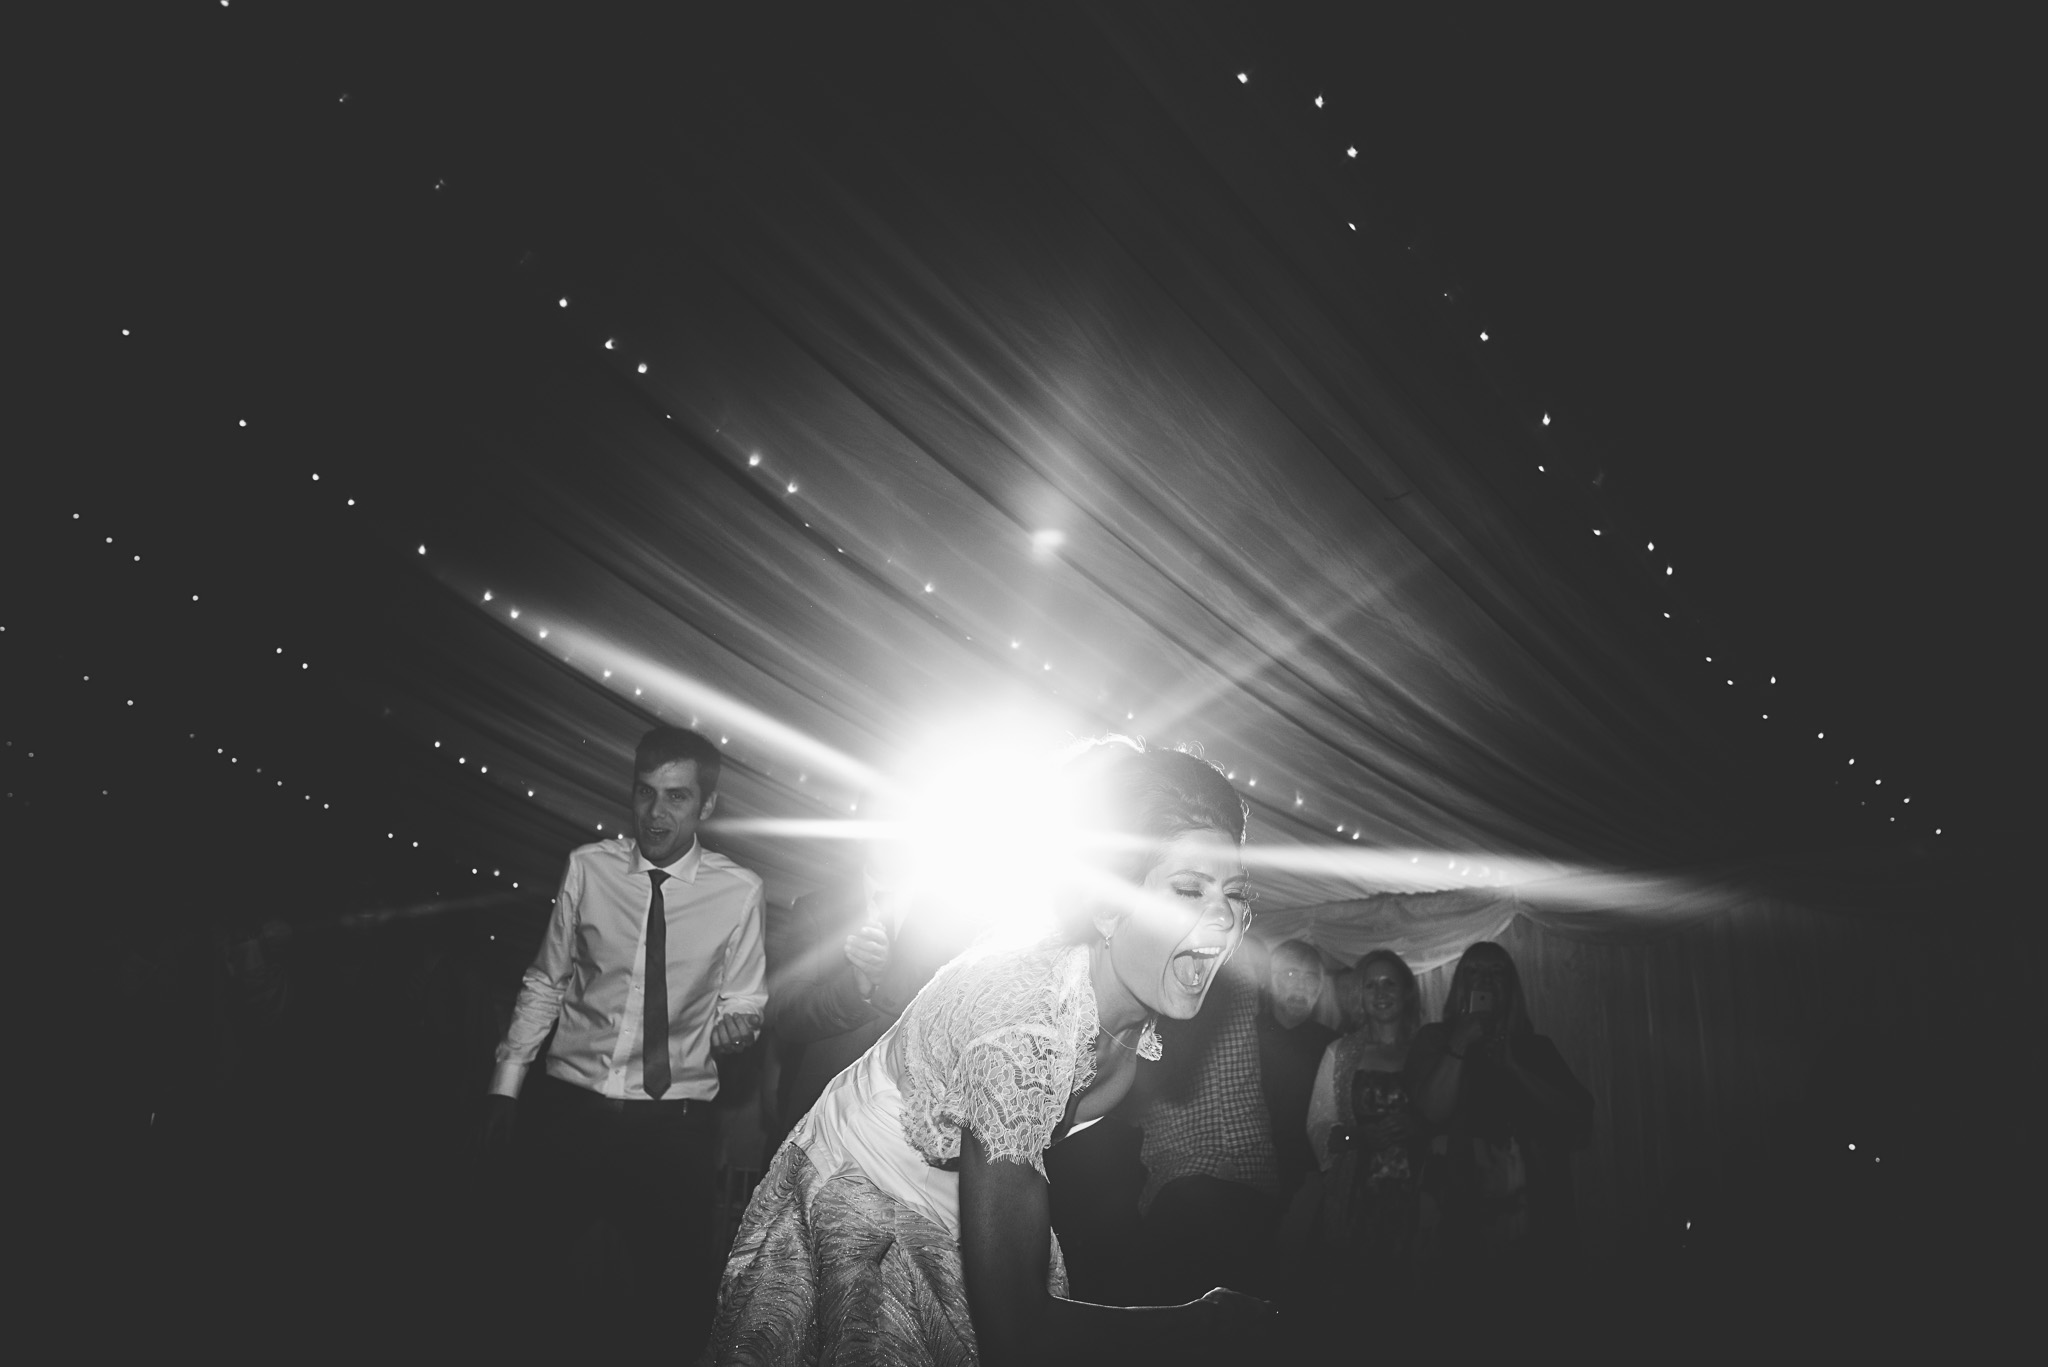 Lara & Jack Wedding 220815 by Barney Walters_1045_BW2_0939